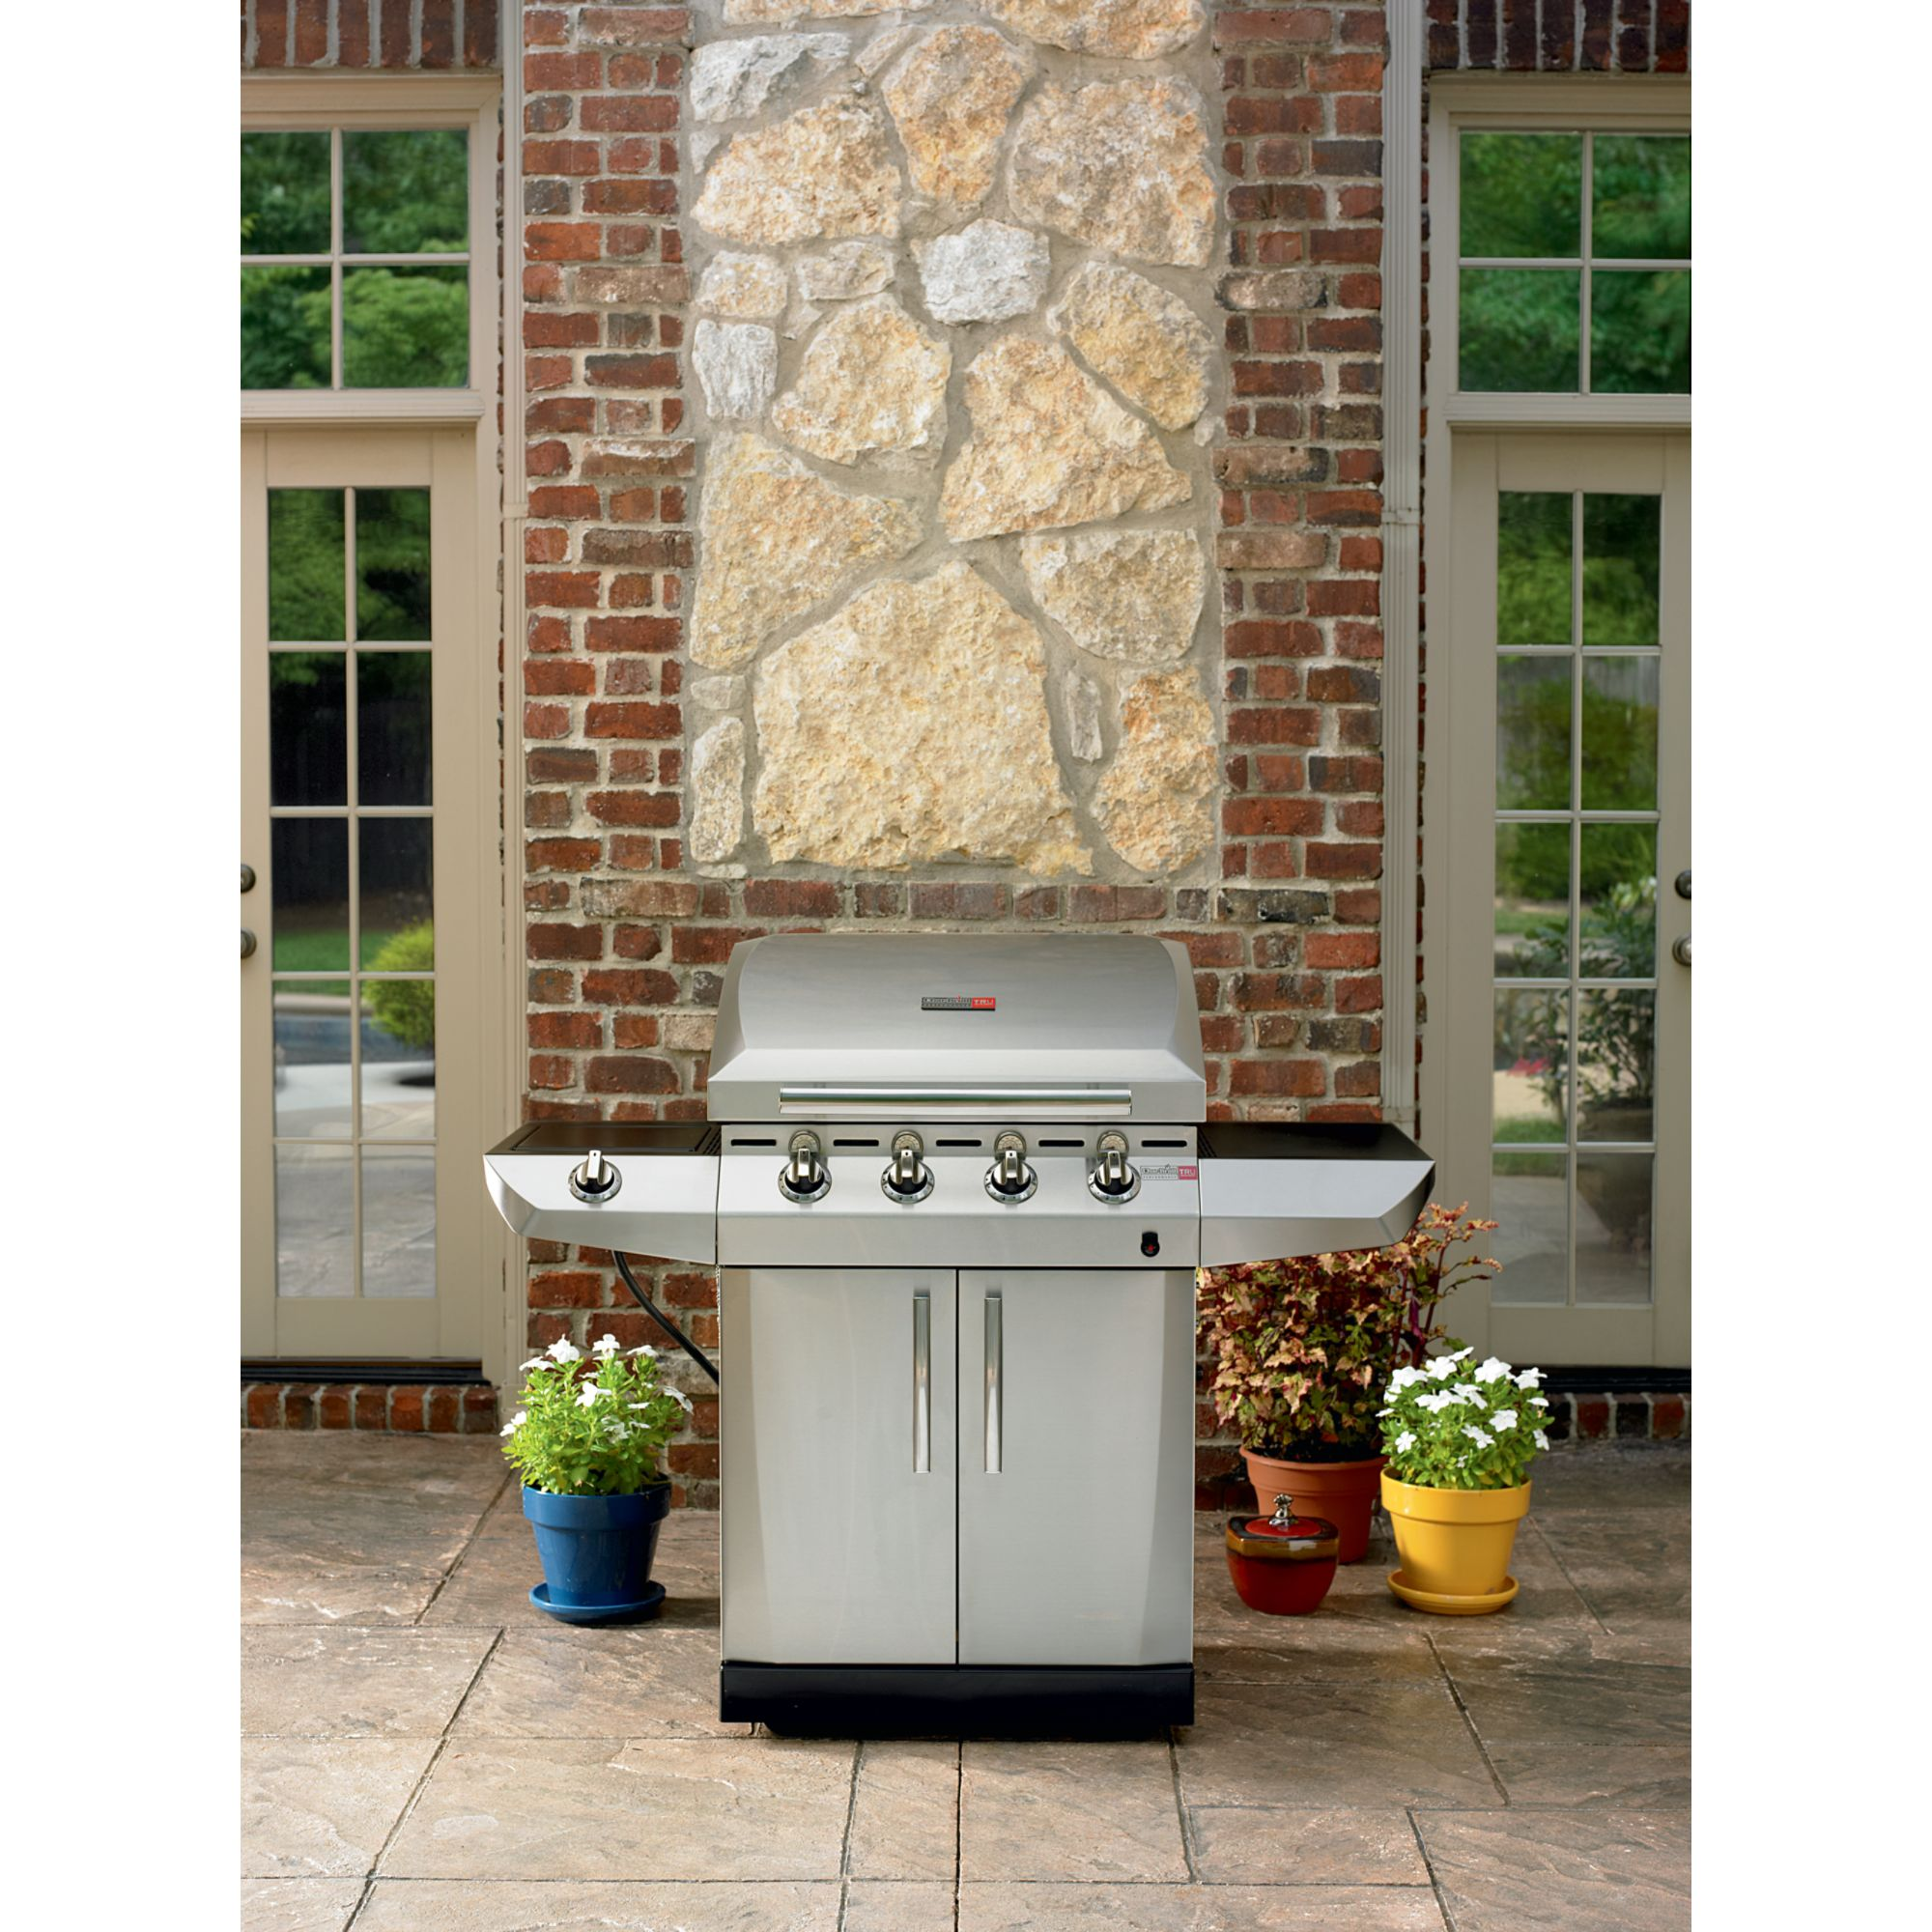 Char-Broil 4-Burner Infrared Gas Grill